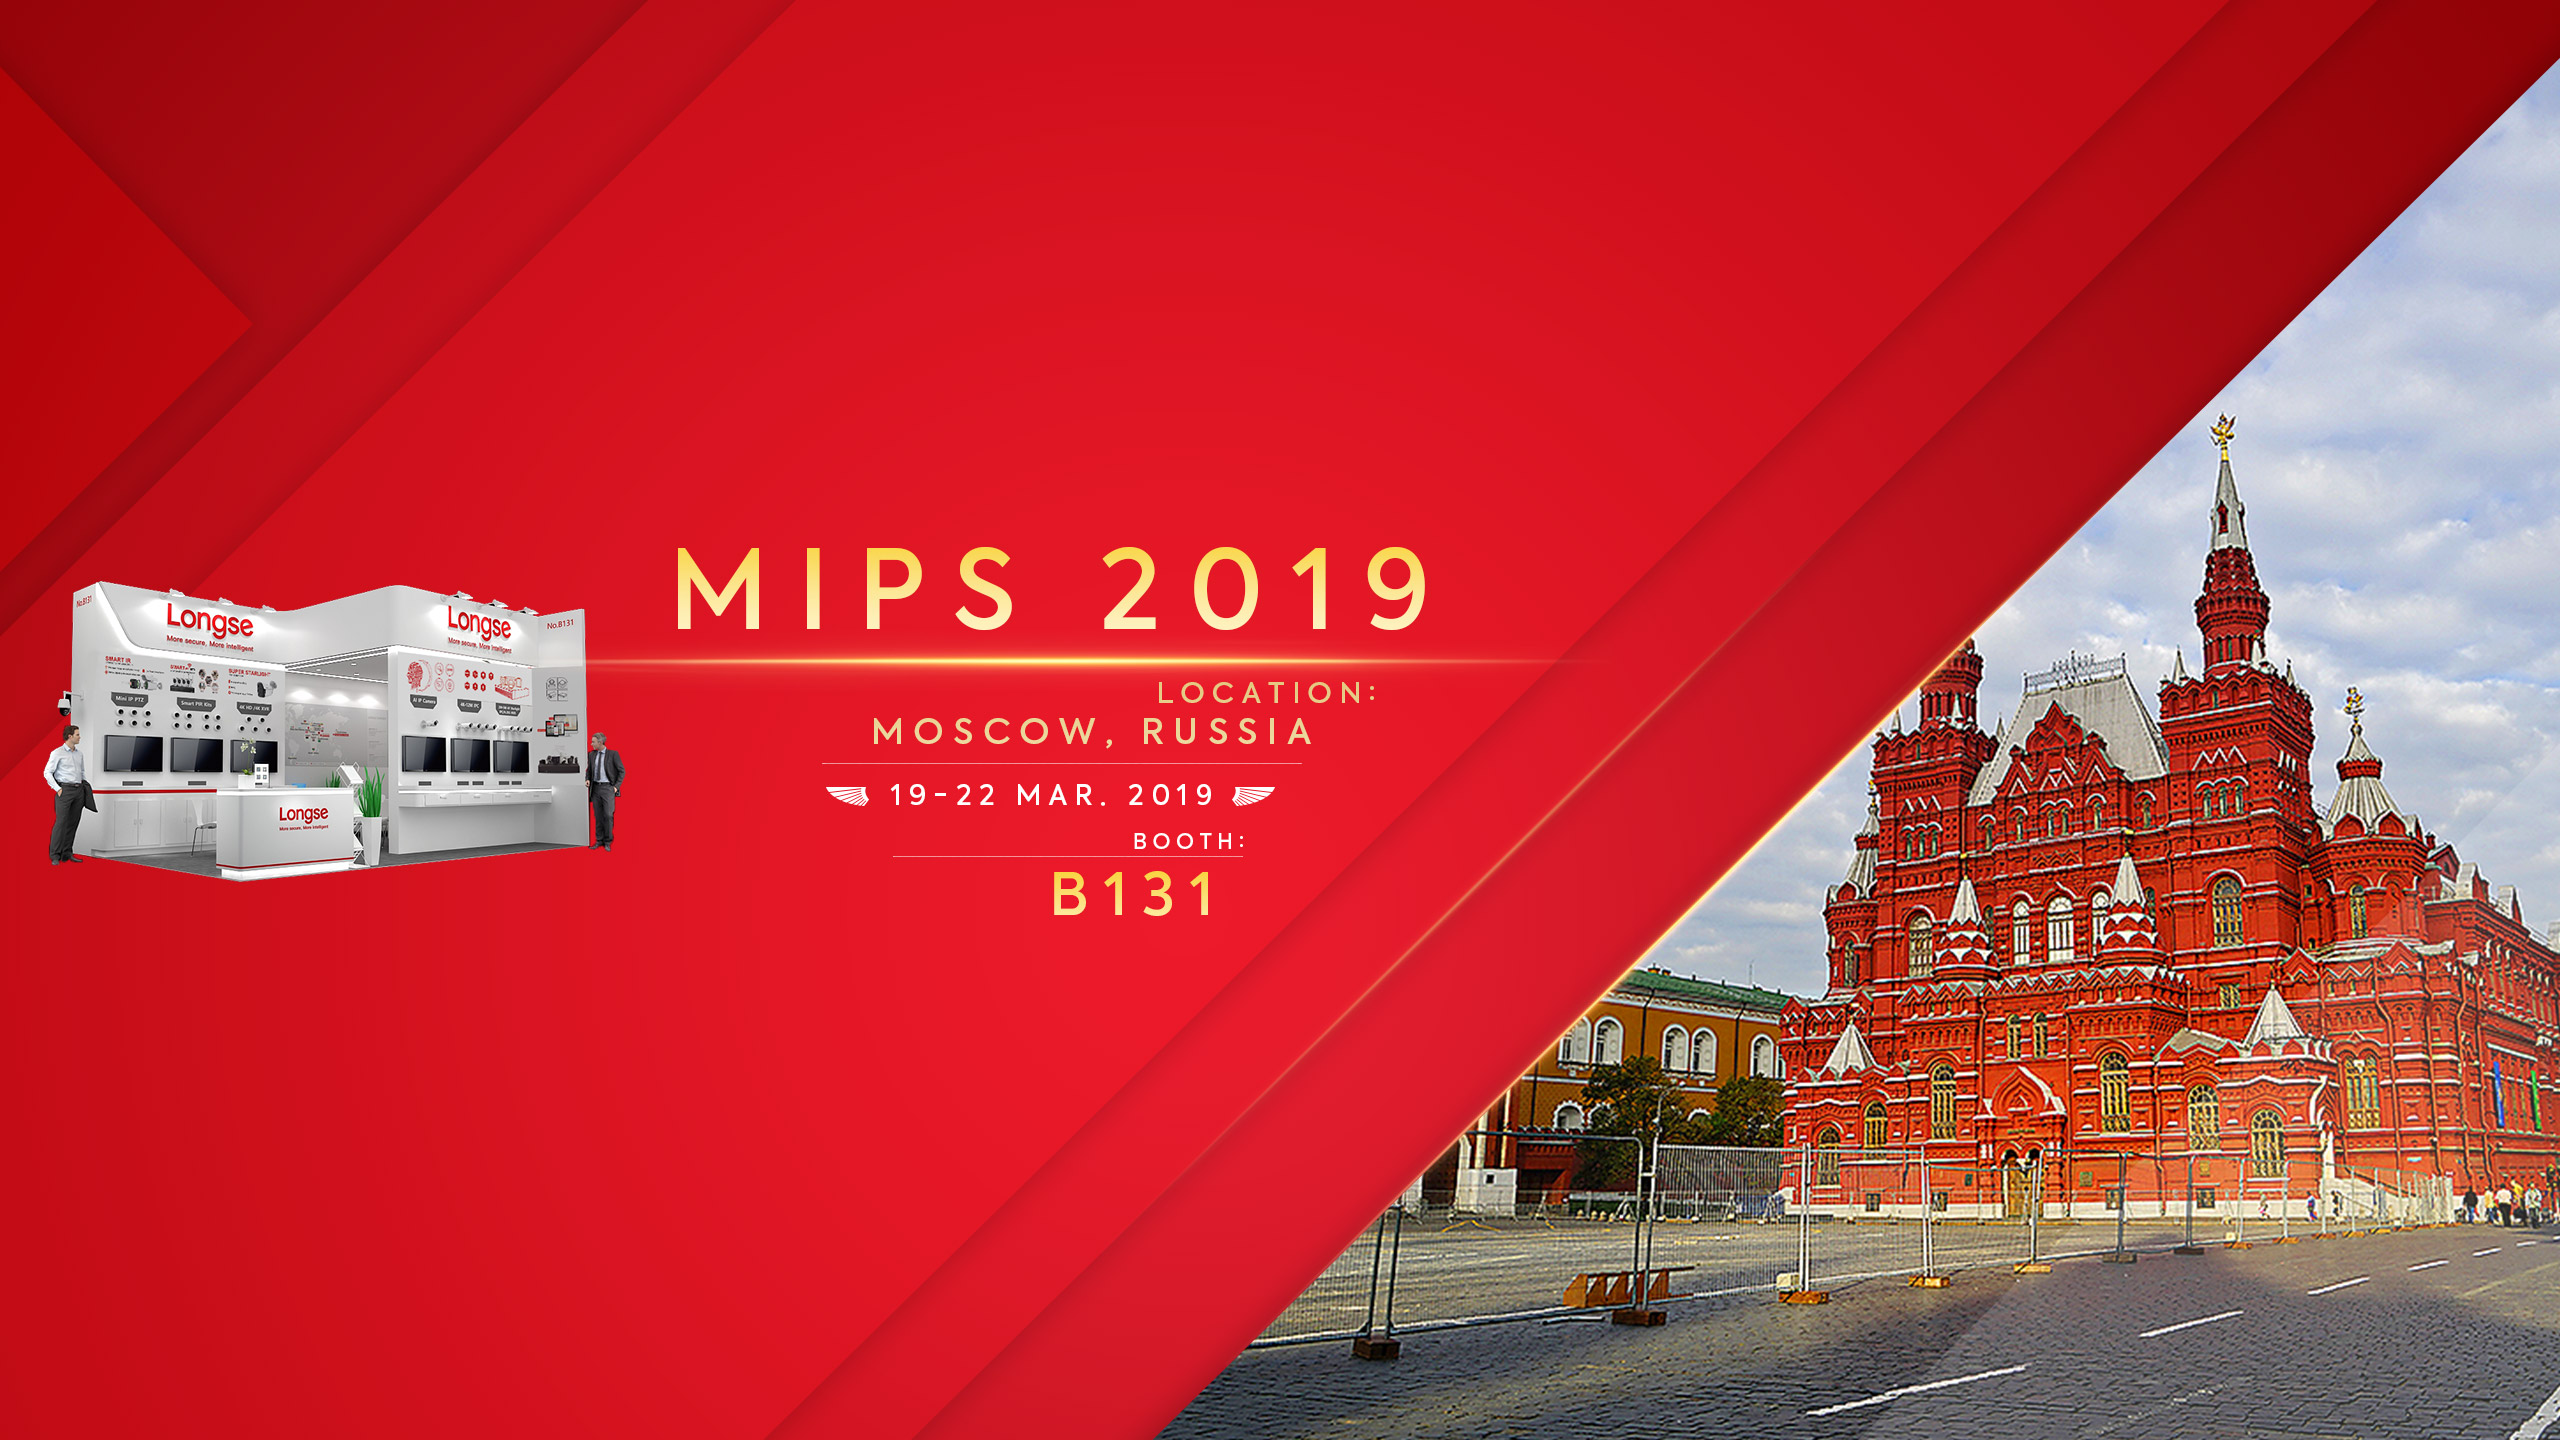 Longse's Invitation to MIPS 2019 in Moscow, Russia - Longse